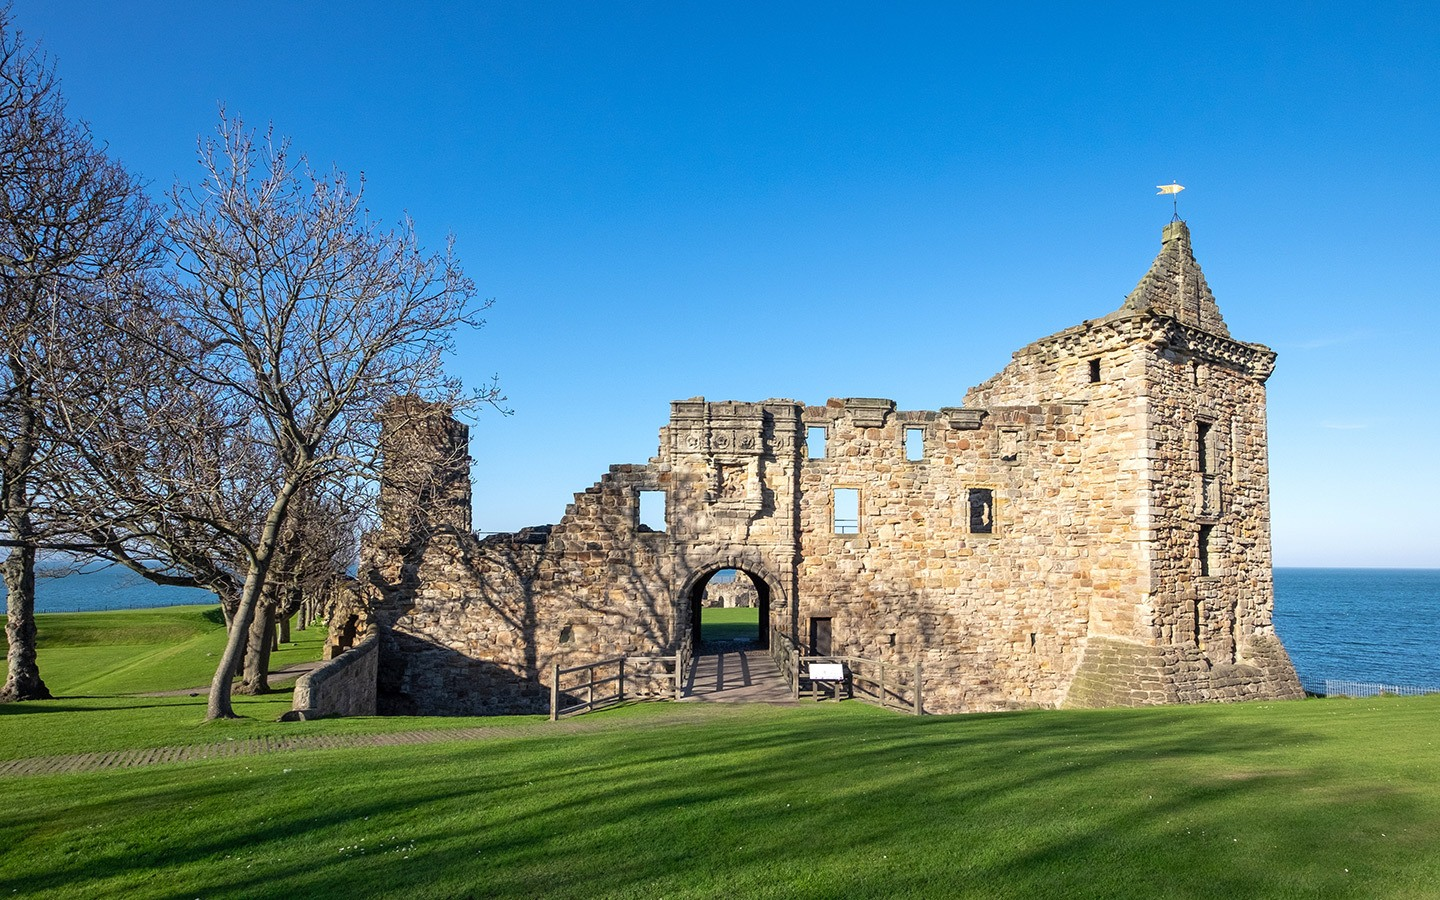 The ruins of St Andrews Castle in Scotland